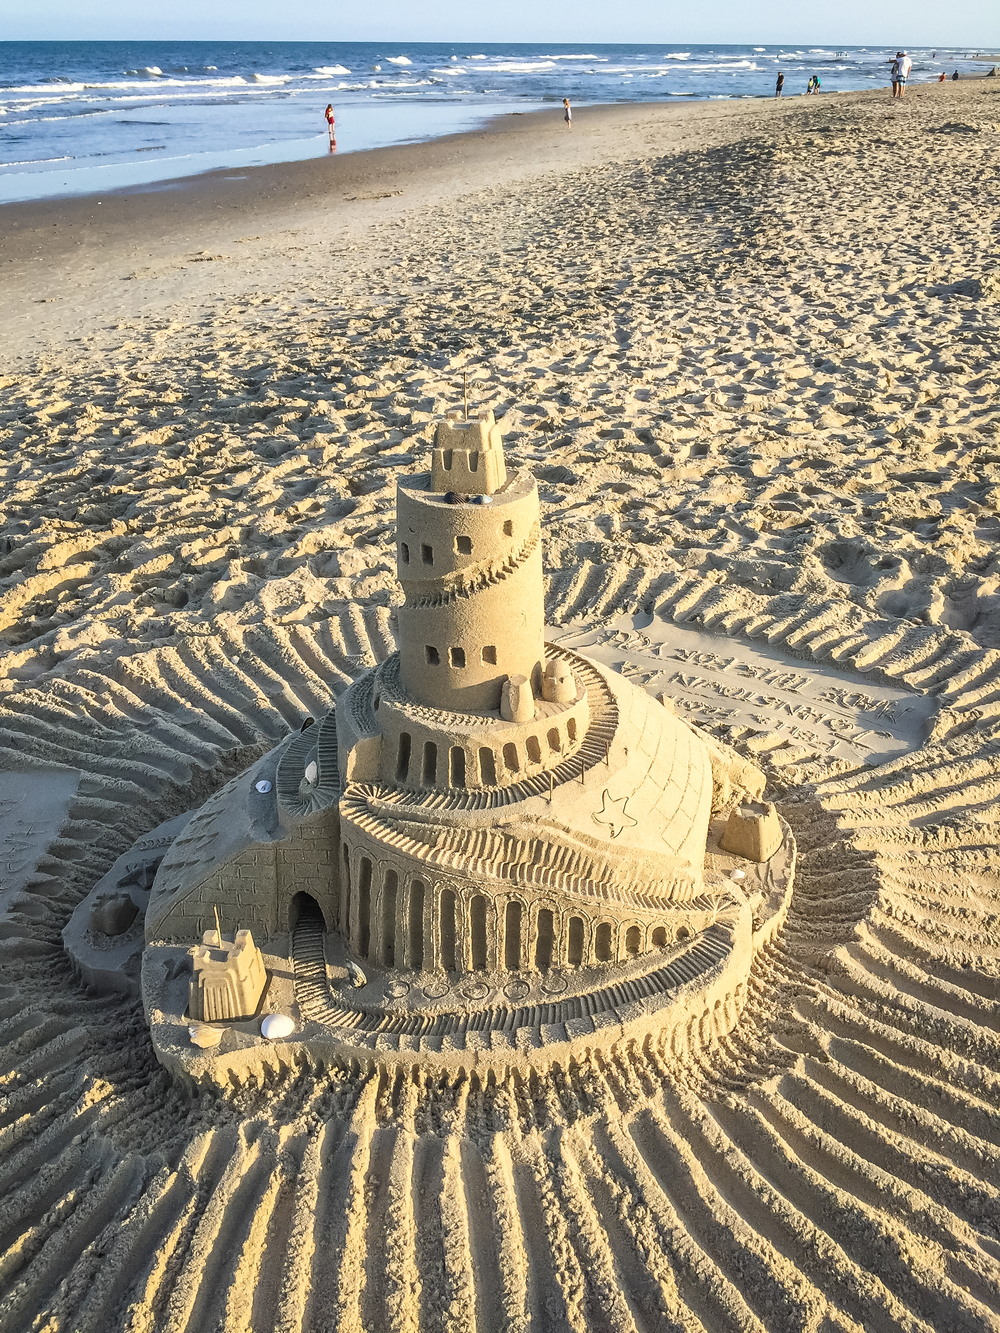 Sand Castle - Chincoteague beach